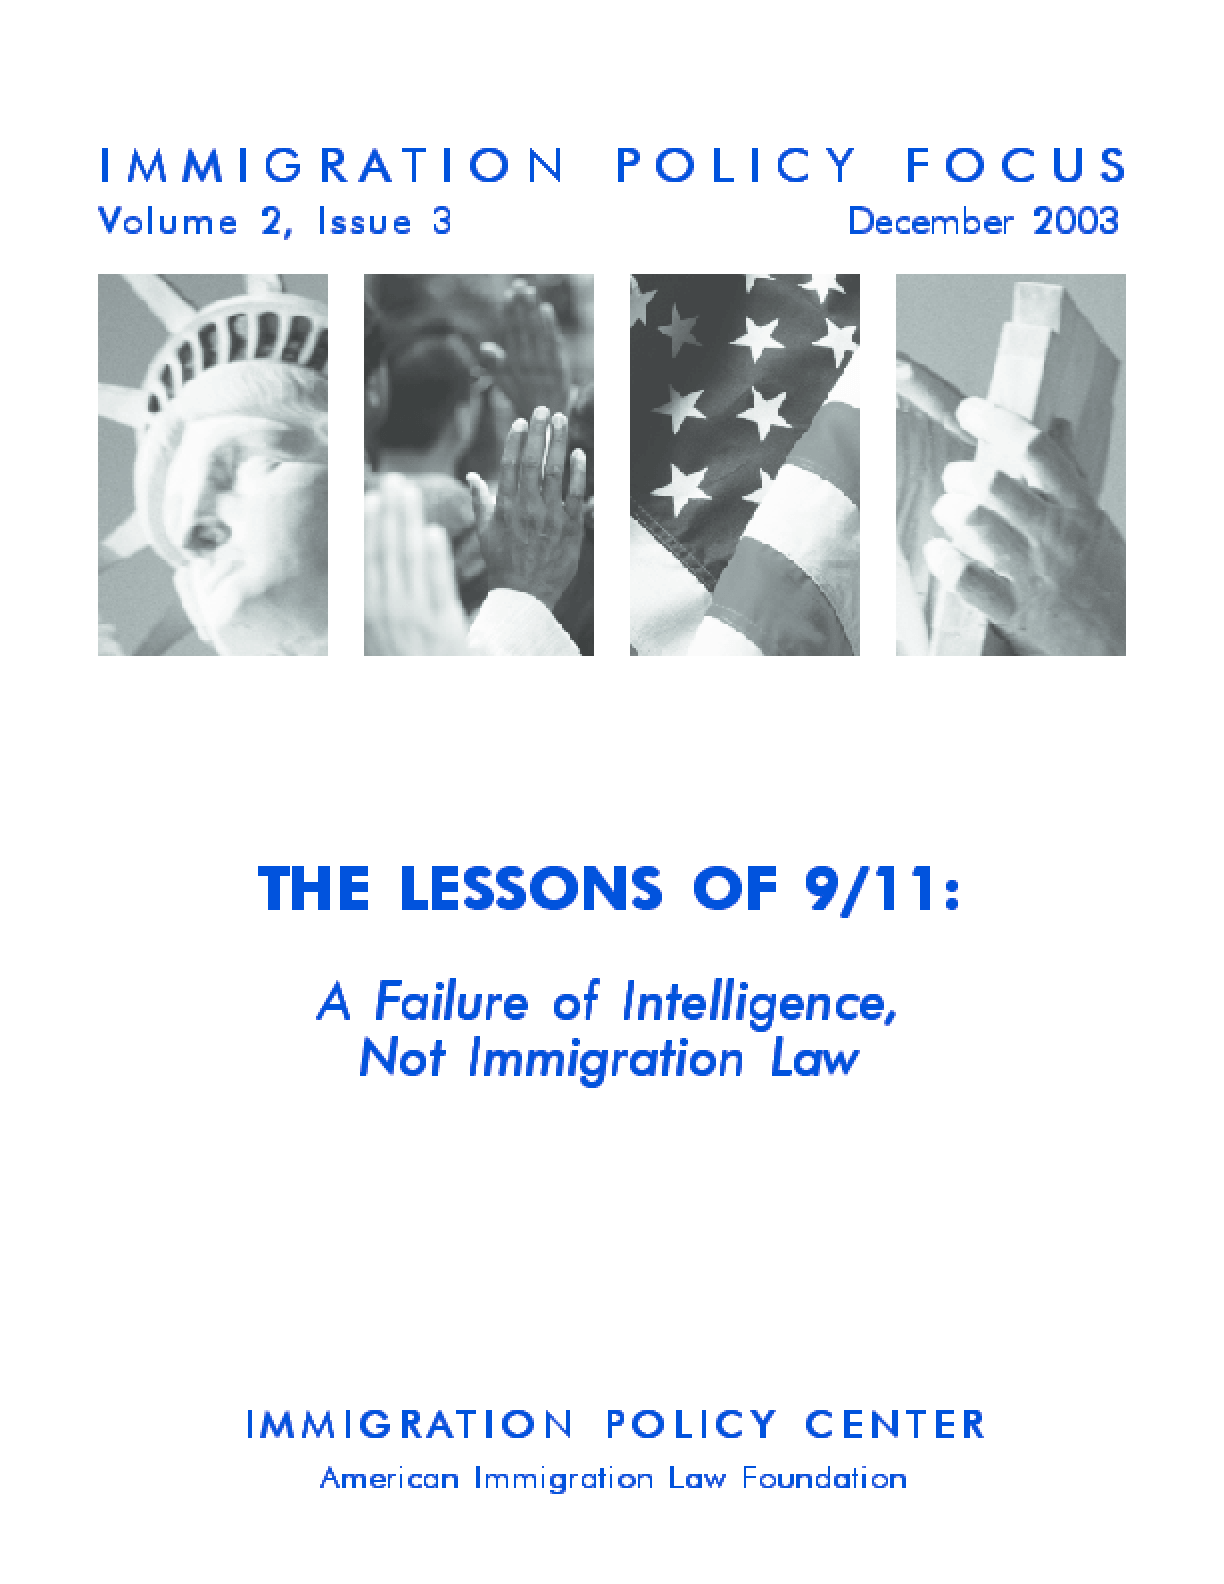 The Lessons of 9/11: A Failure of Intelligence, Not Immigration Law